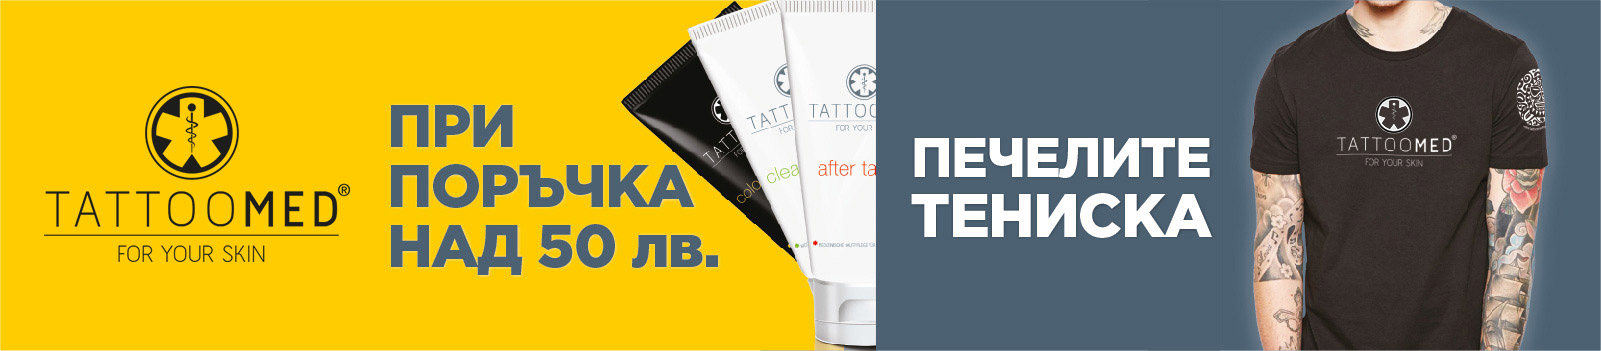 Tatuirovki-gift-slide-new